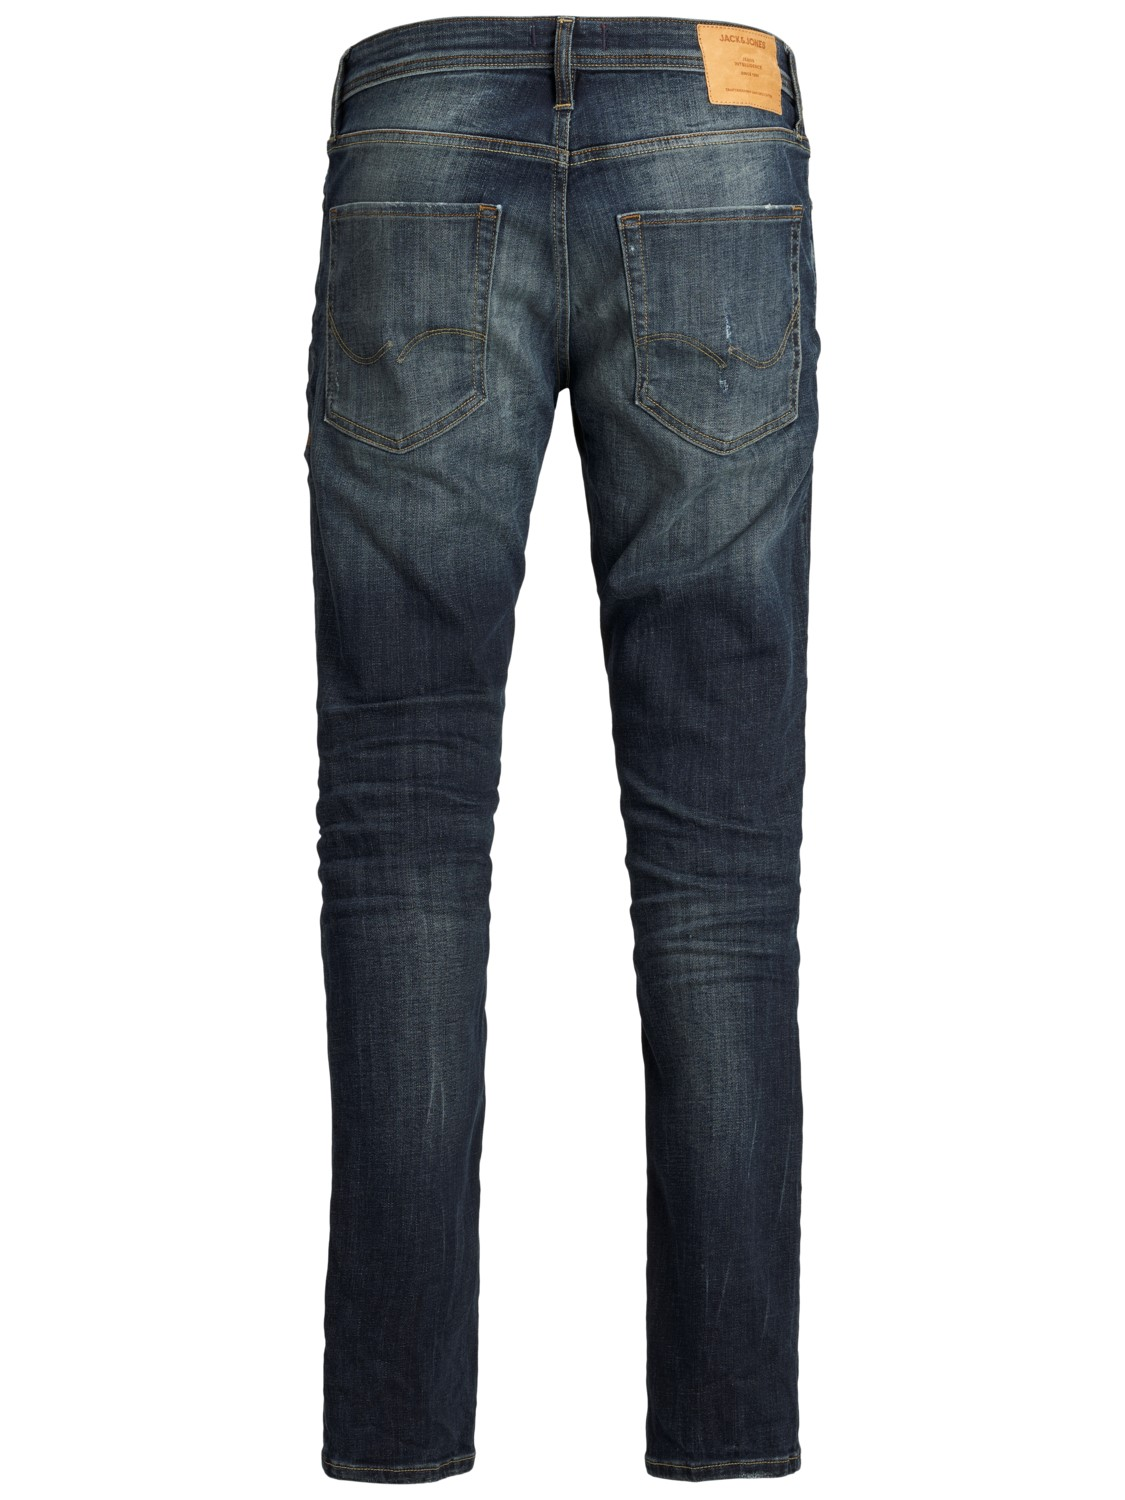 jack-jones-herren-jeans-jjitim-jjoriginal-am-890-50sps-slim-fit-blau-blue-denim